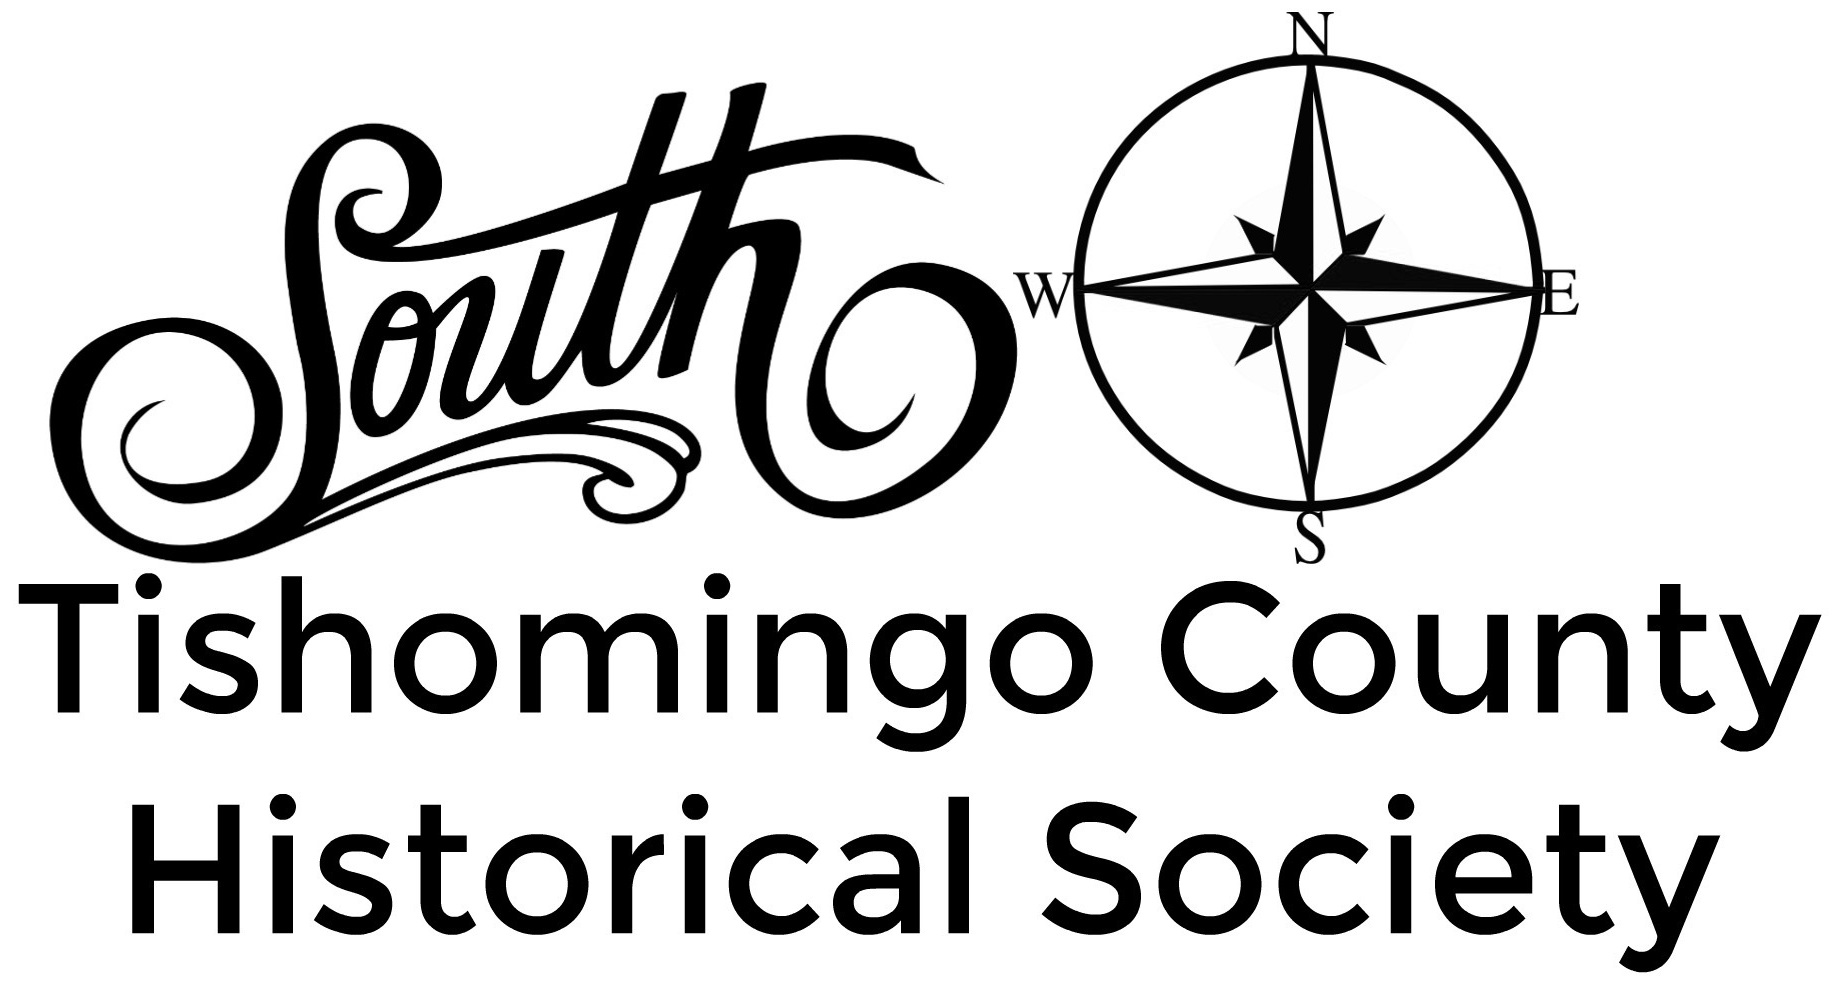 South Tishomingo County Historical Society